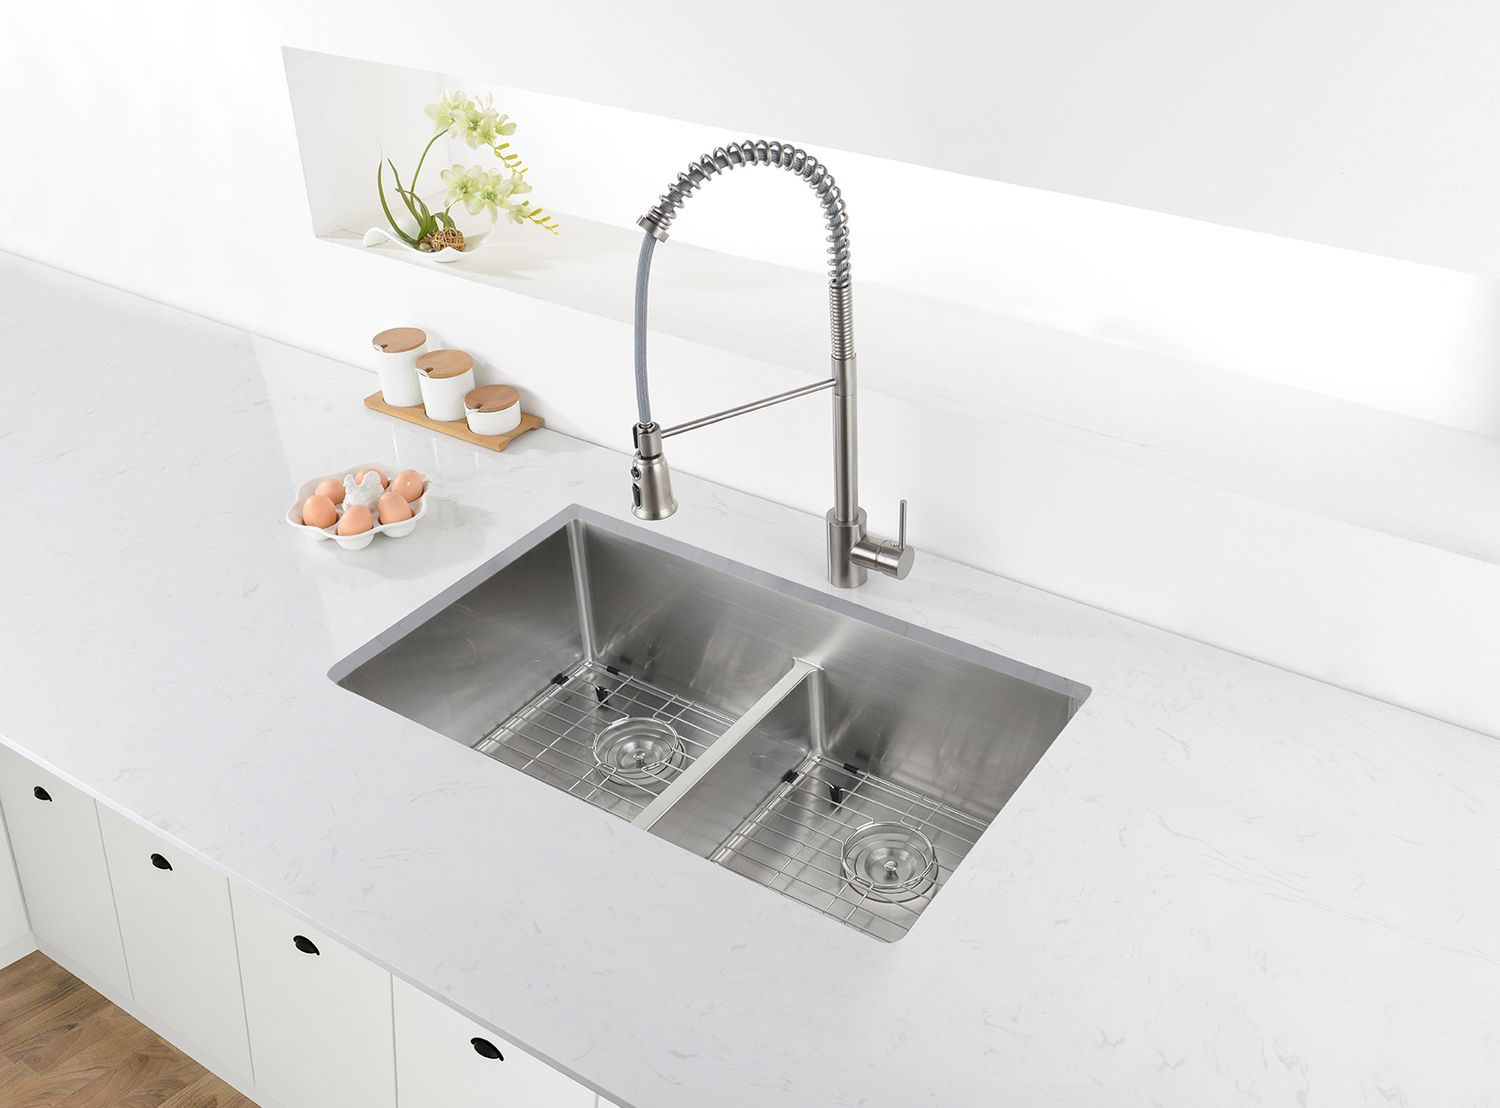 Ruvati Rvh7255 Double Bowl Sinks Ruvati 28 Inch Low Divide Undermount Tight Radius 60 40 Double Bowl 16 Gauge Stainless Steel Kitchen Sink Rvh7255 Undermount Kitchen Sinks Stainless Steel Kitchen Sink